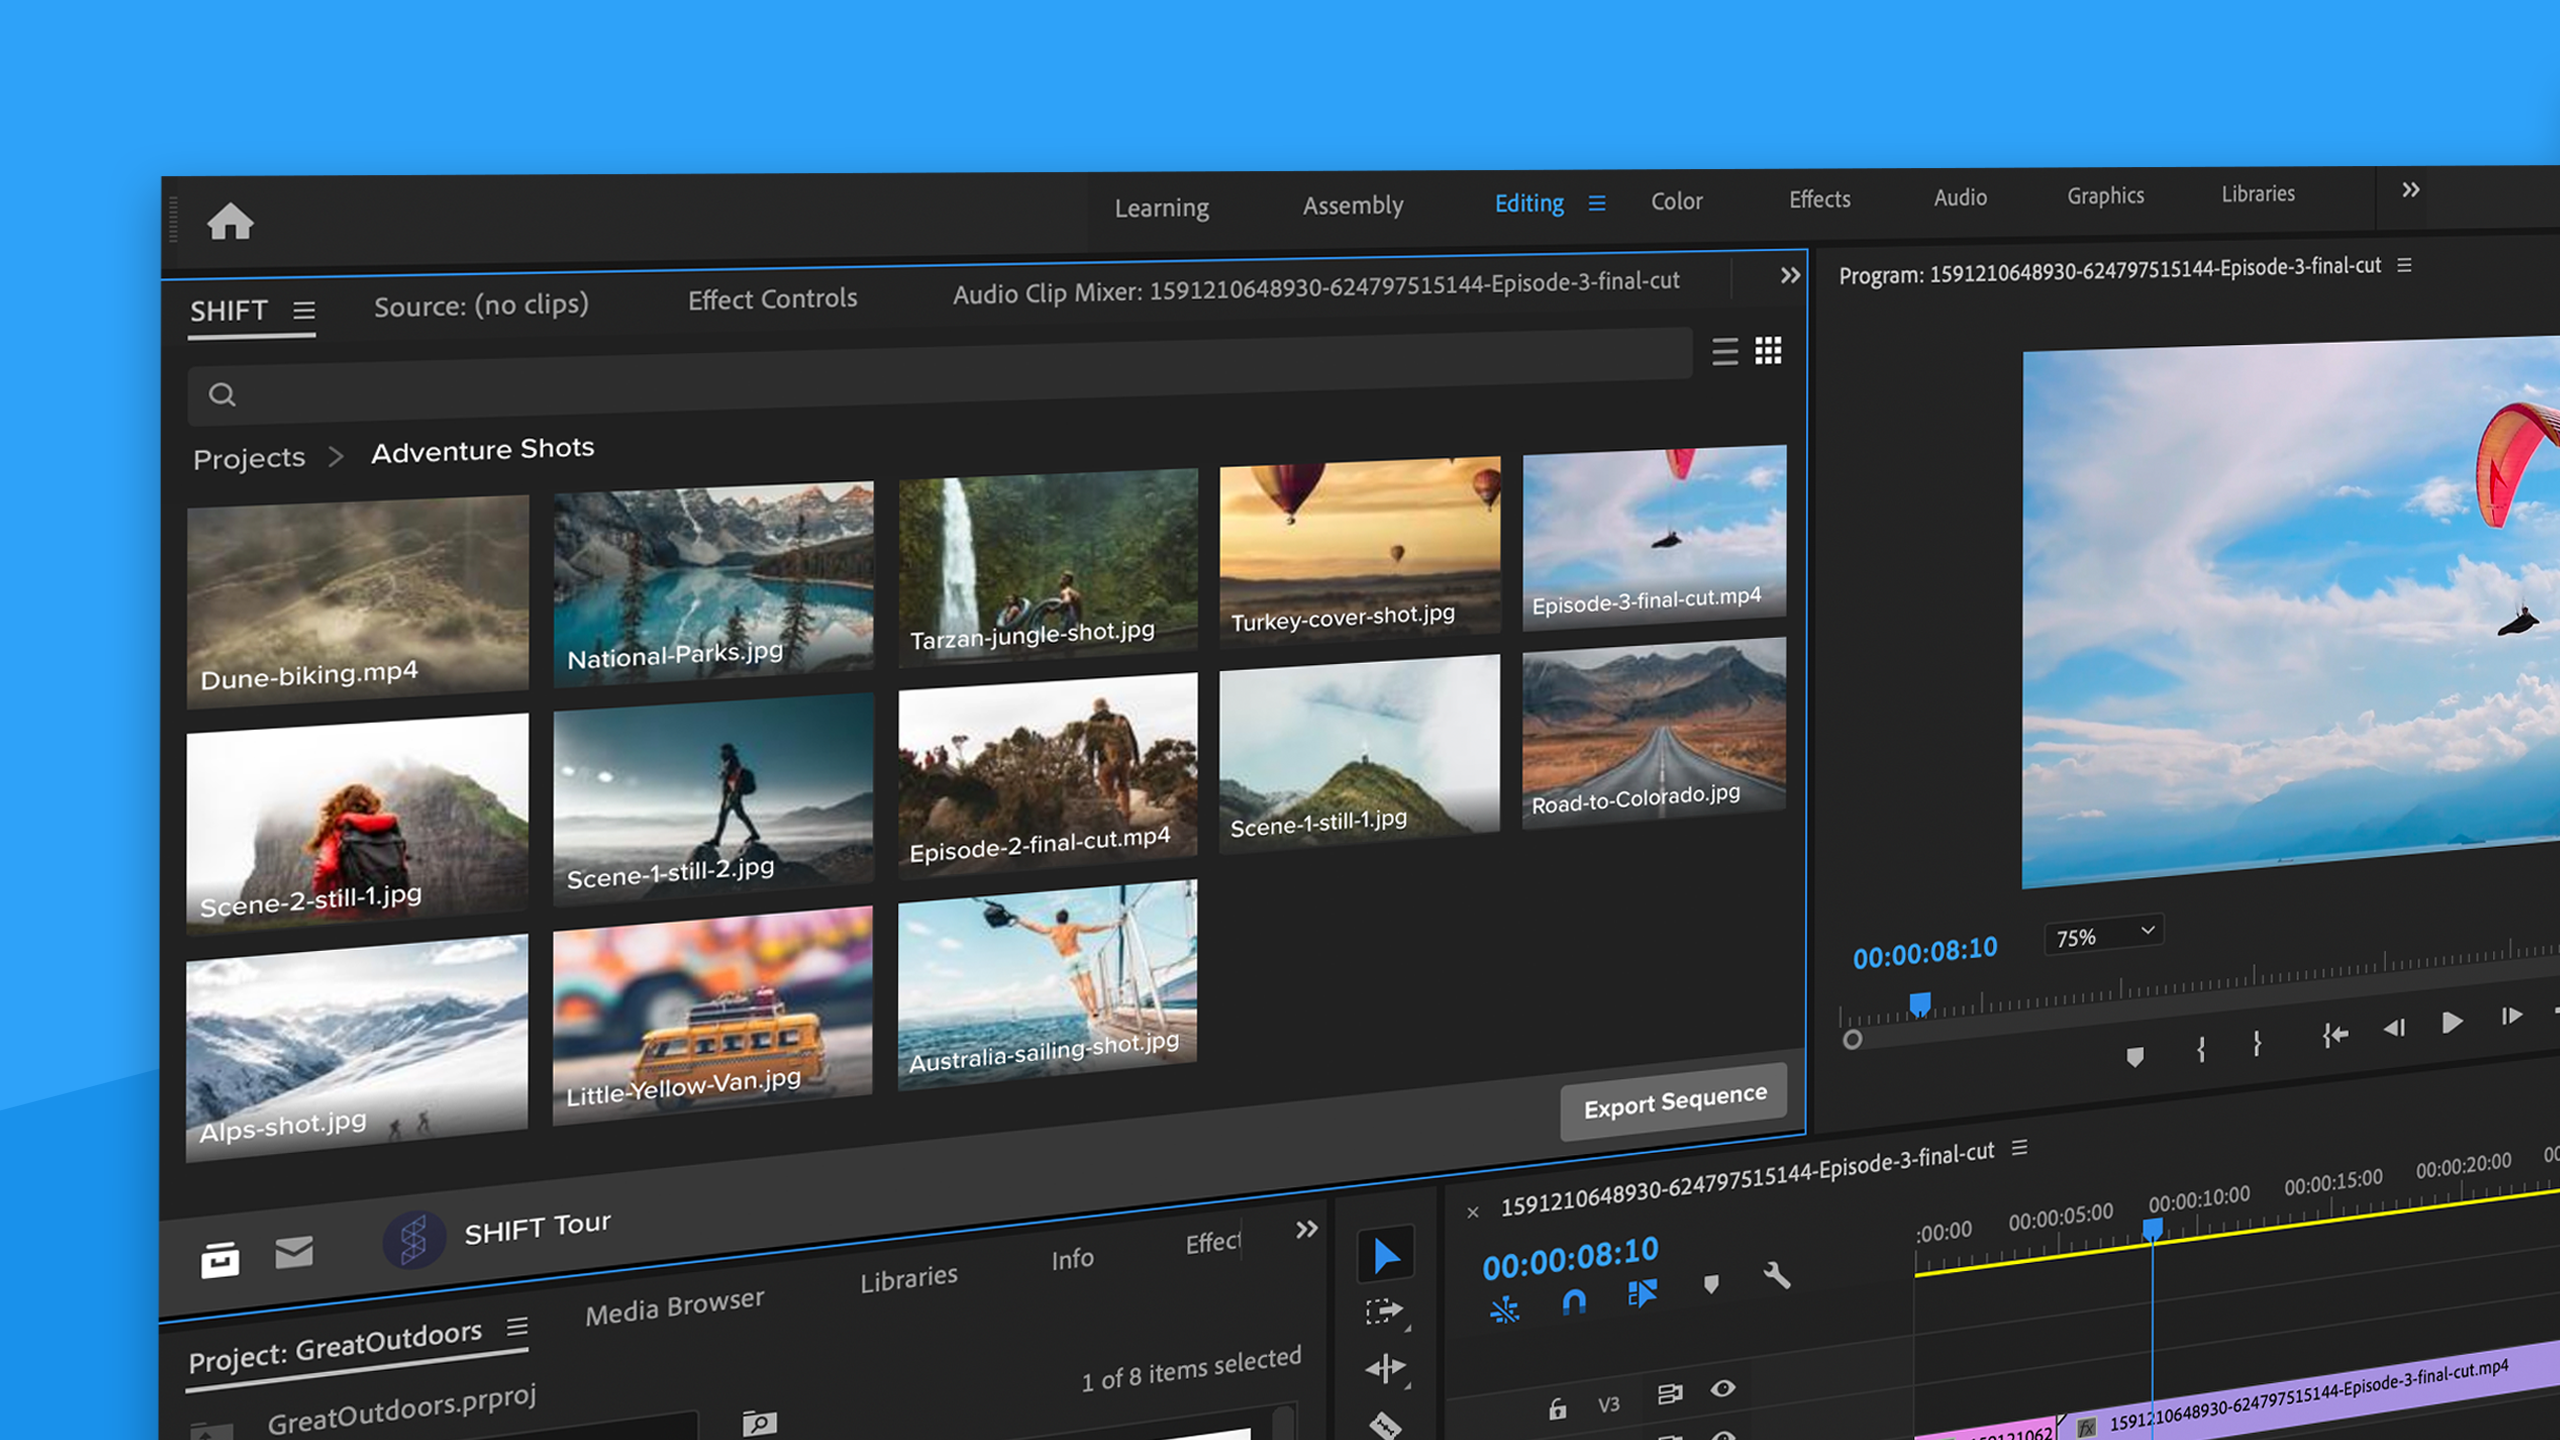 Adobe_Panel_Shots_premiere_pro_gallery_view_v2